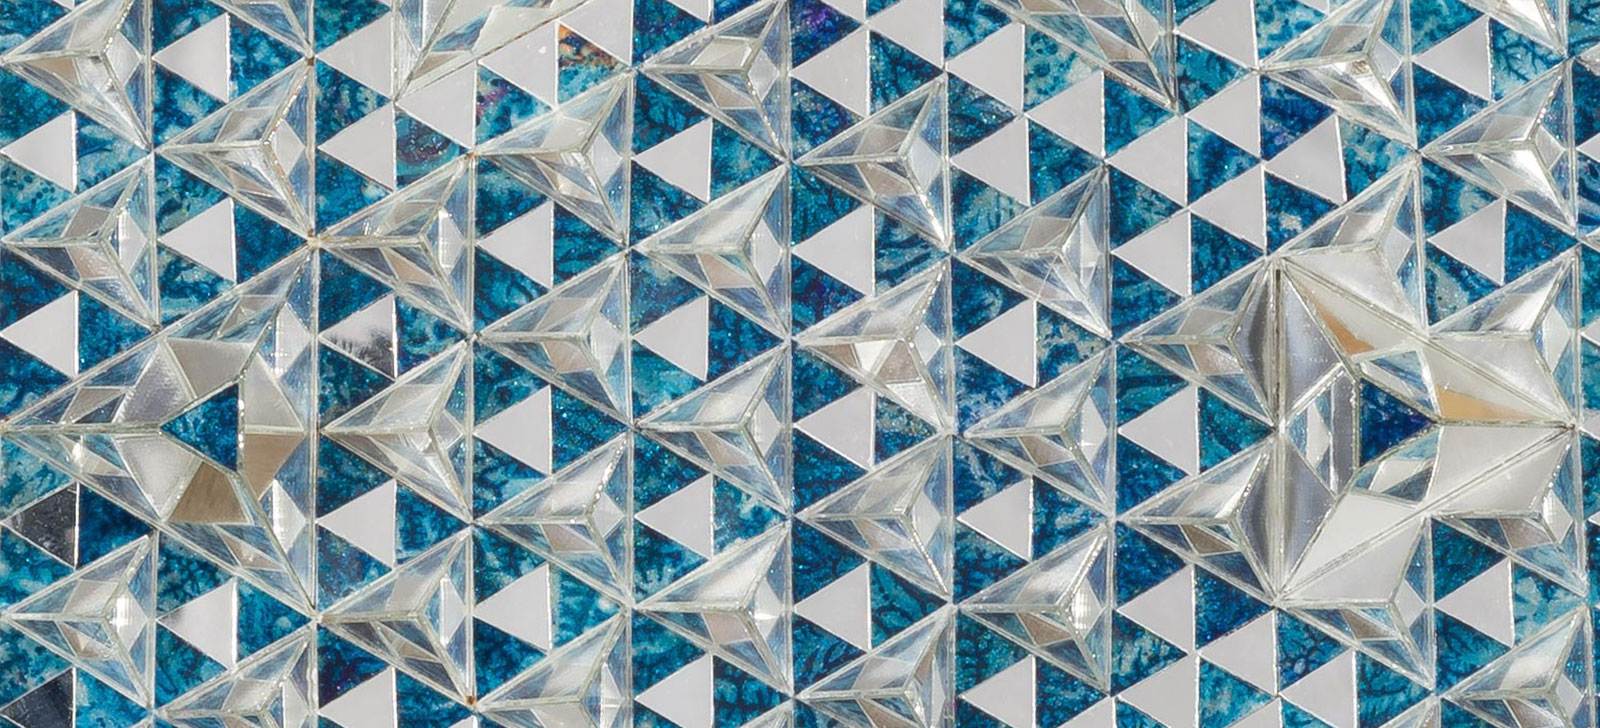 Monir (Shahroudy) Farmanfarmaian (1922-2019)